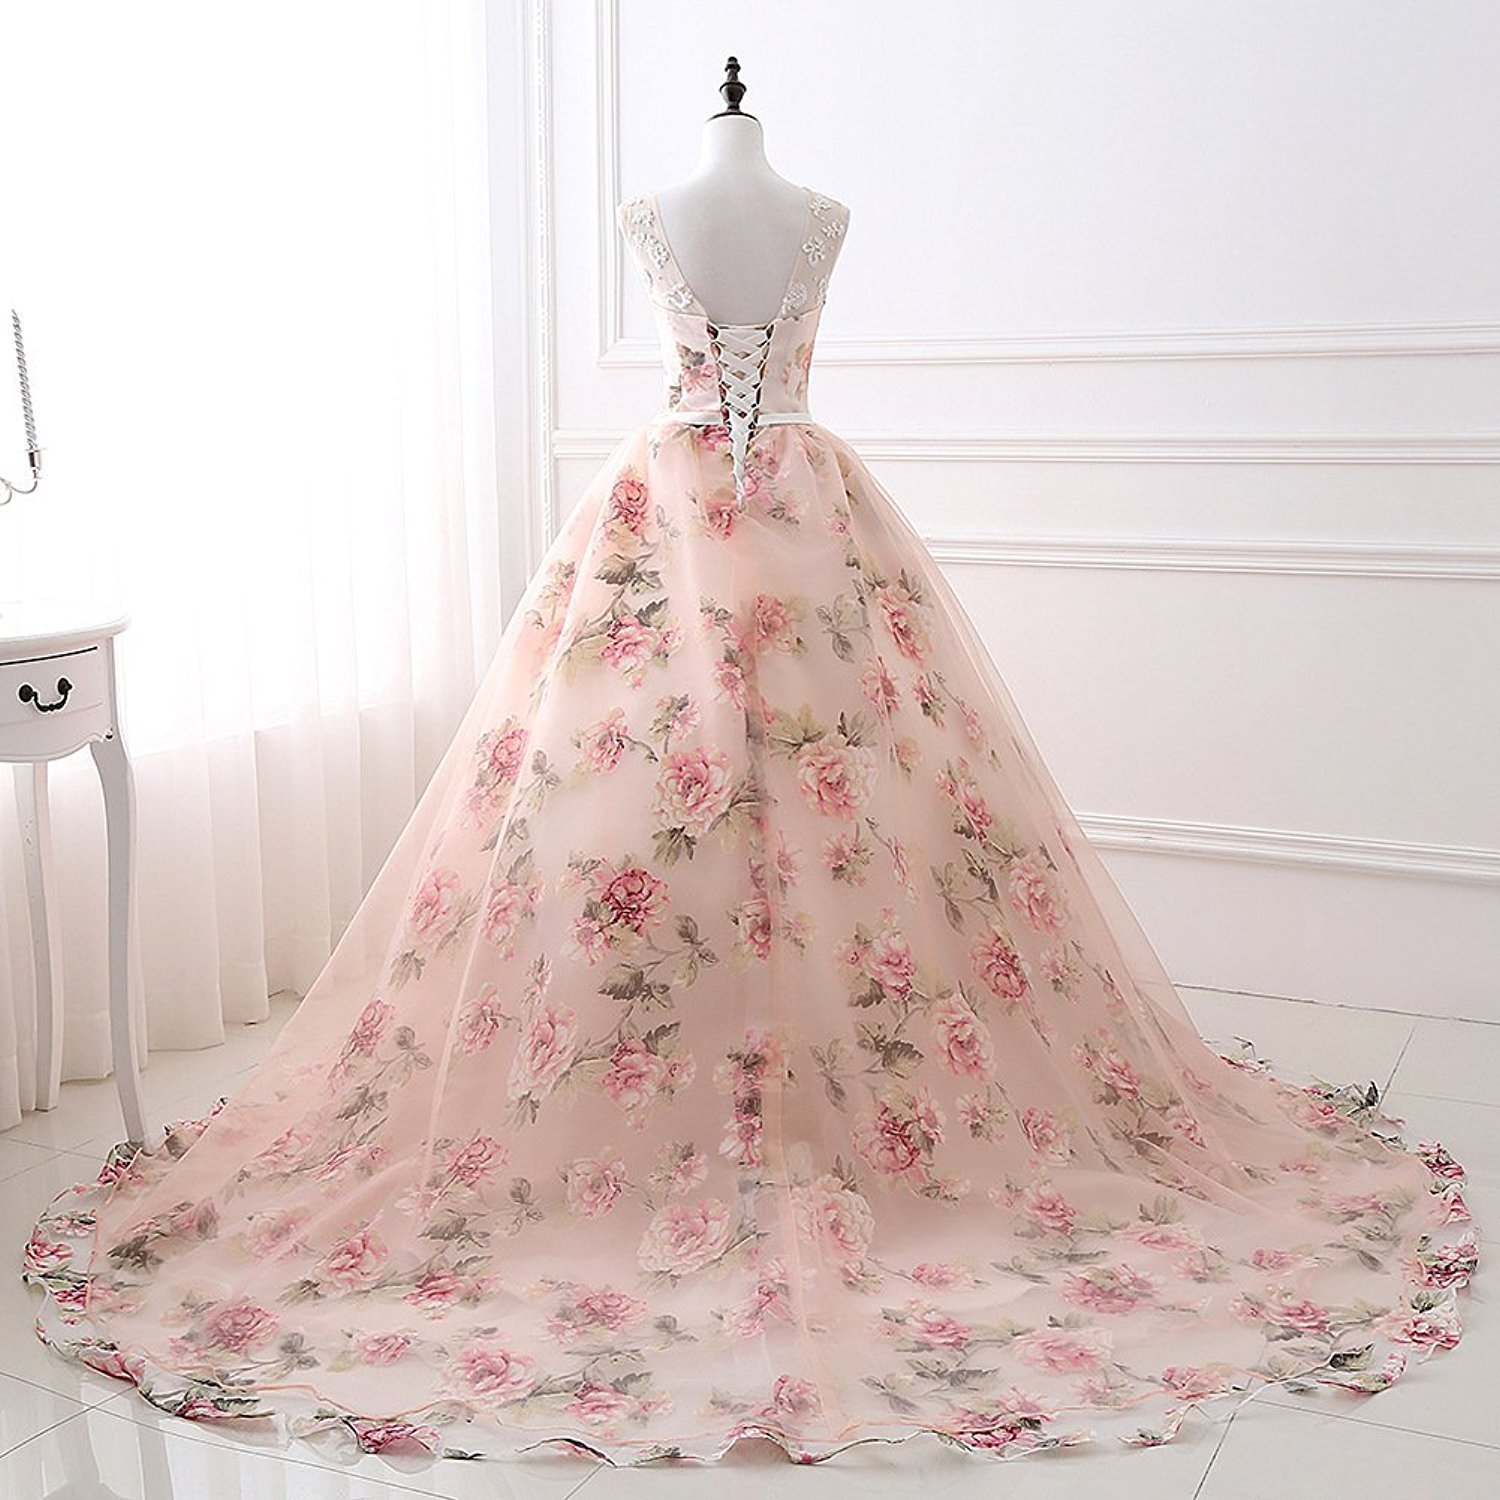 Women's Ball Gown Embroidery Floral Print Long Evening Gown Formal Prom Dress